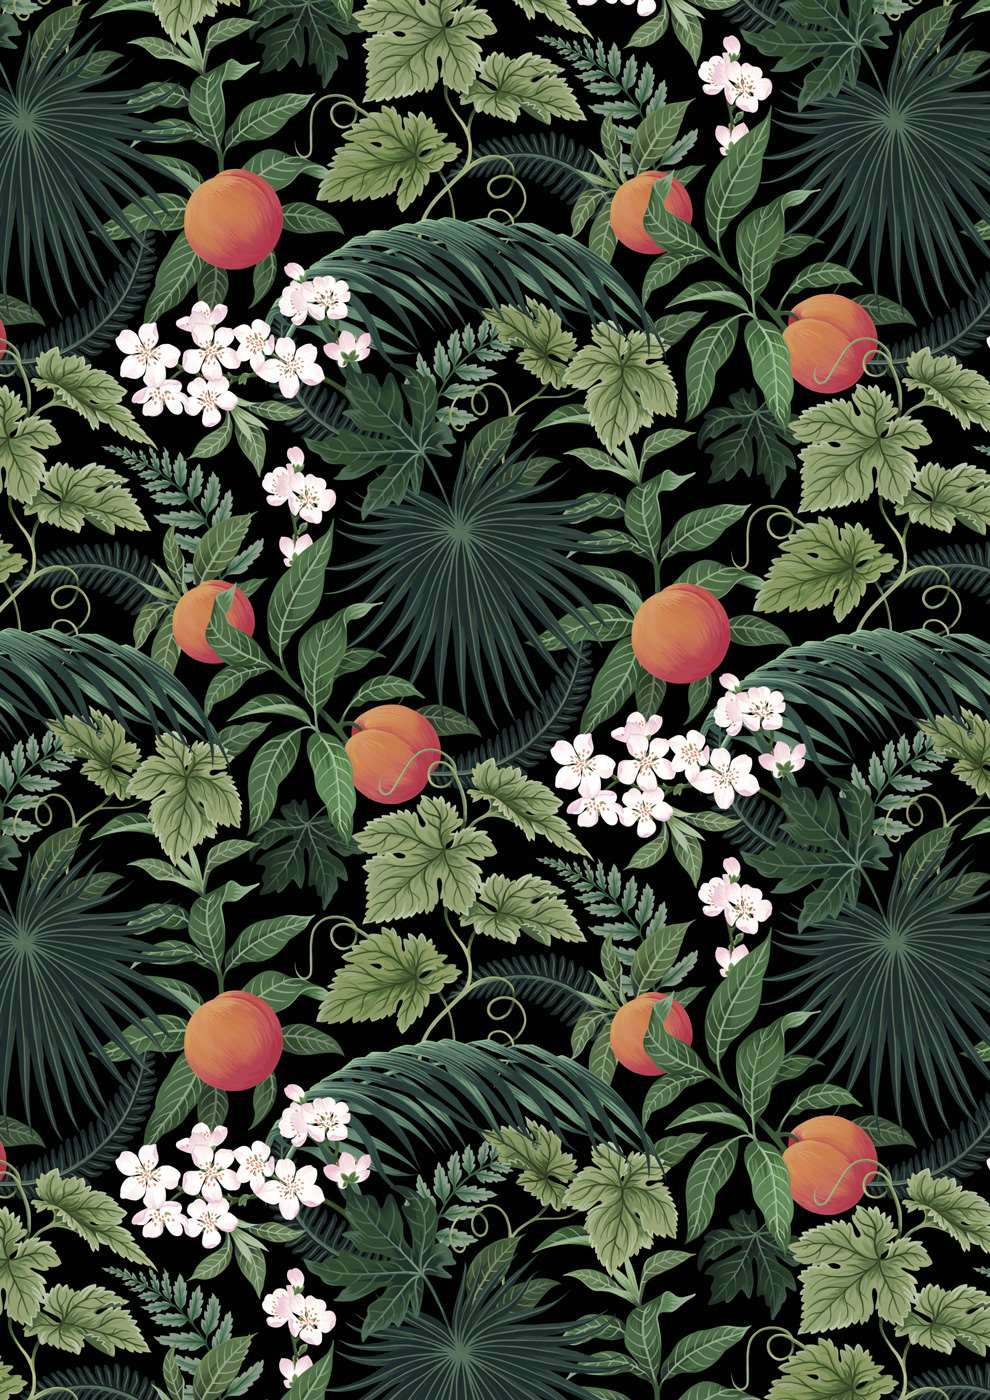 Charlotte Day, Botanical fruit print for Briska's cider bottles. Branding - painterly details.